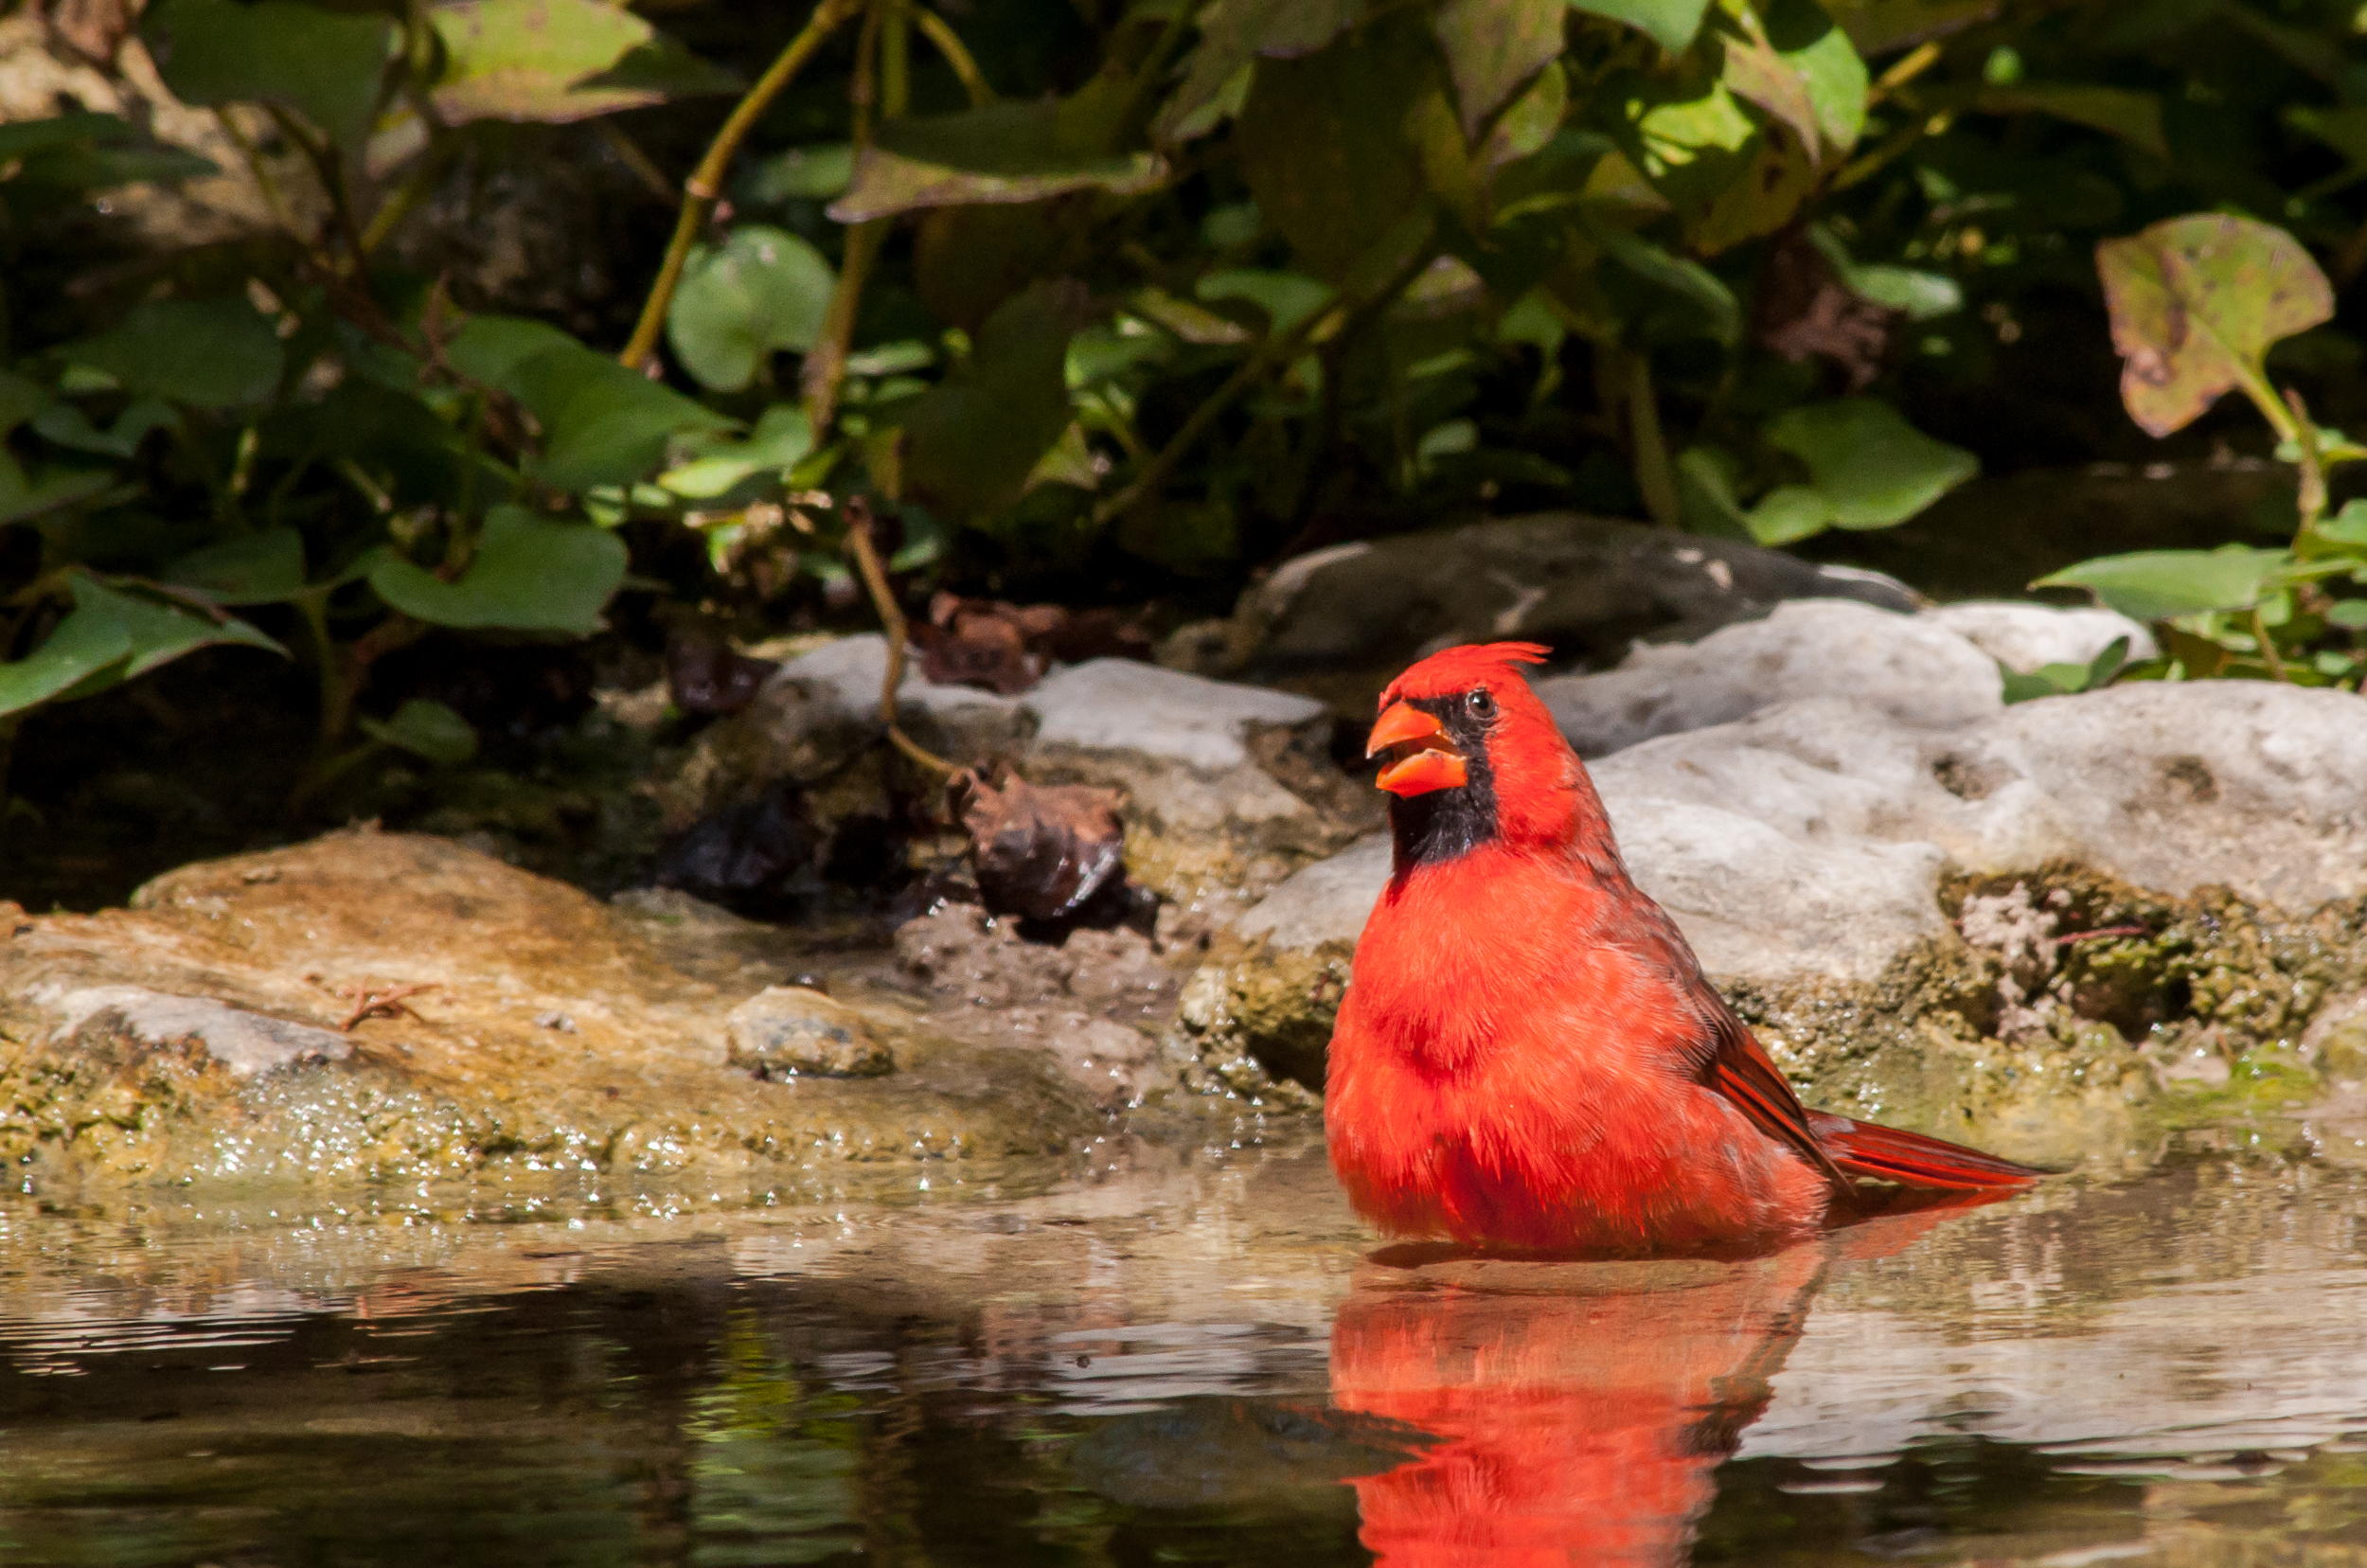 Species: Northern Cardinal (male) Photo Credit: Alyssia Church Date: September 2016 Location: Warbler Woods Bird Sanctuary